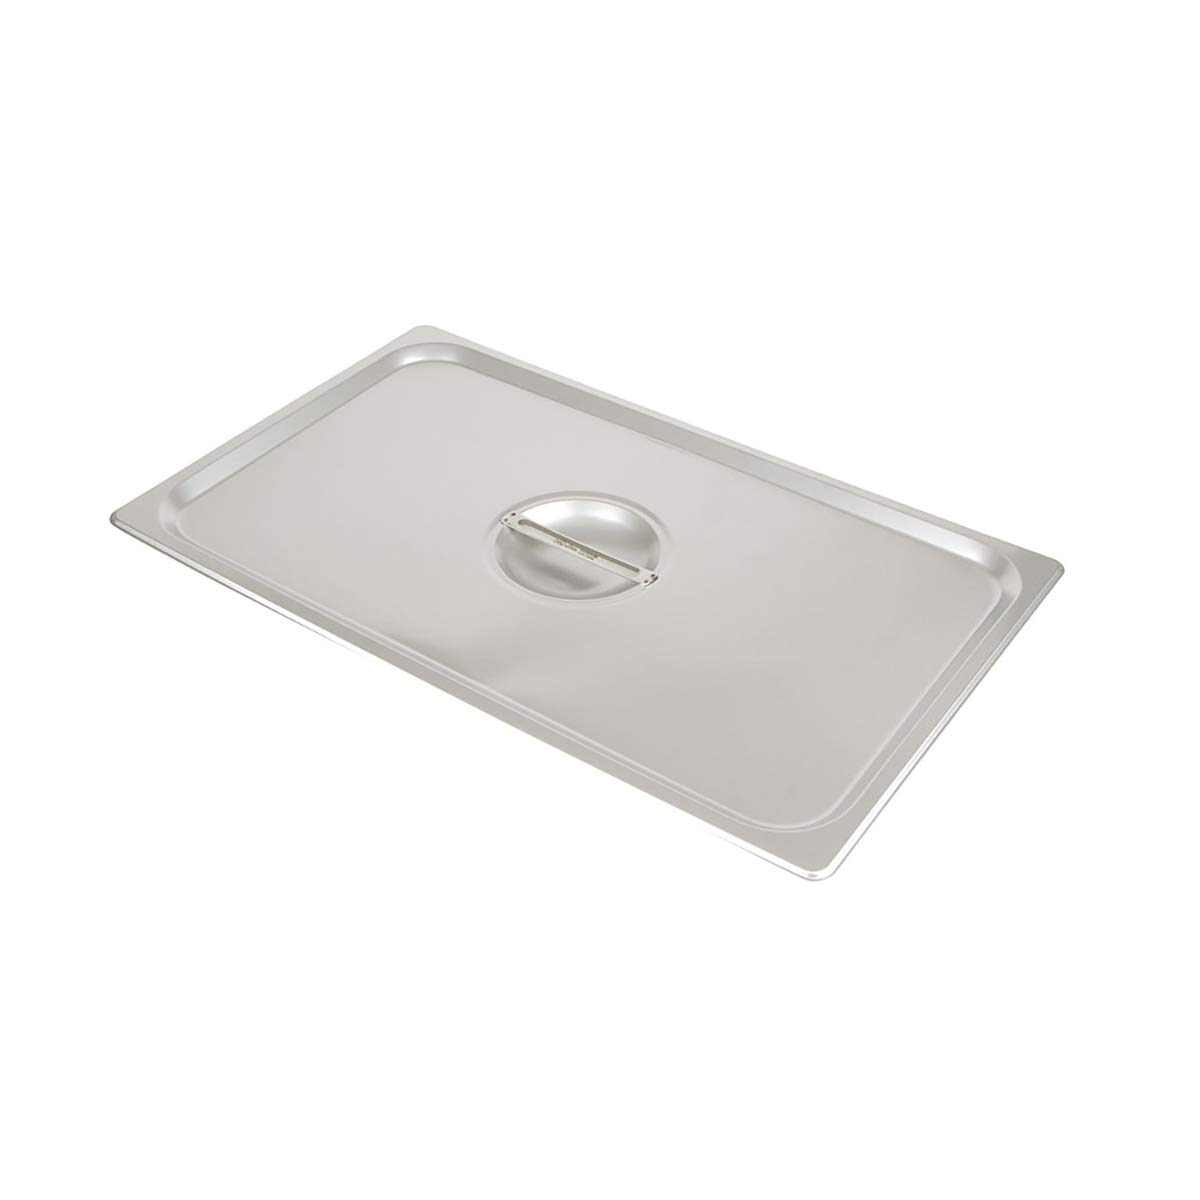 Solid Cover Size: 21'' W x 13'' D